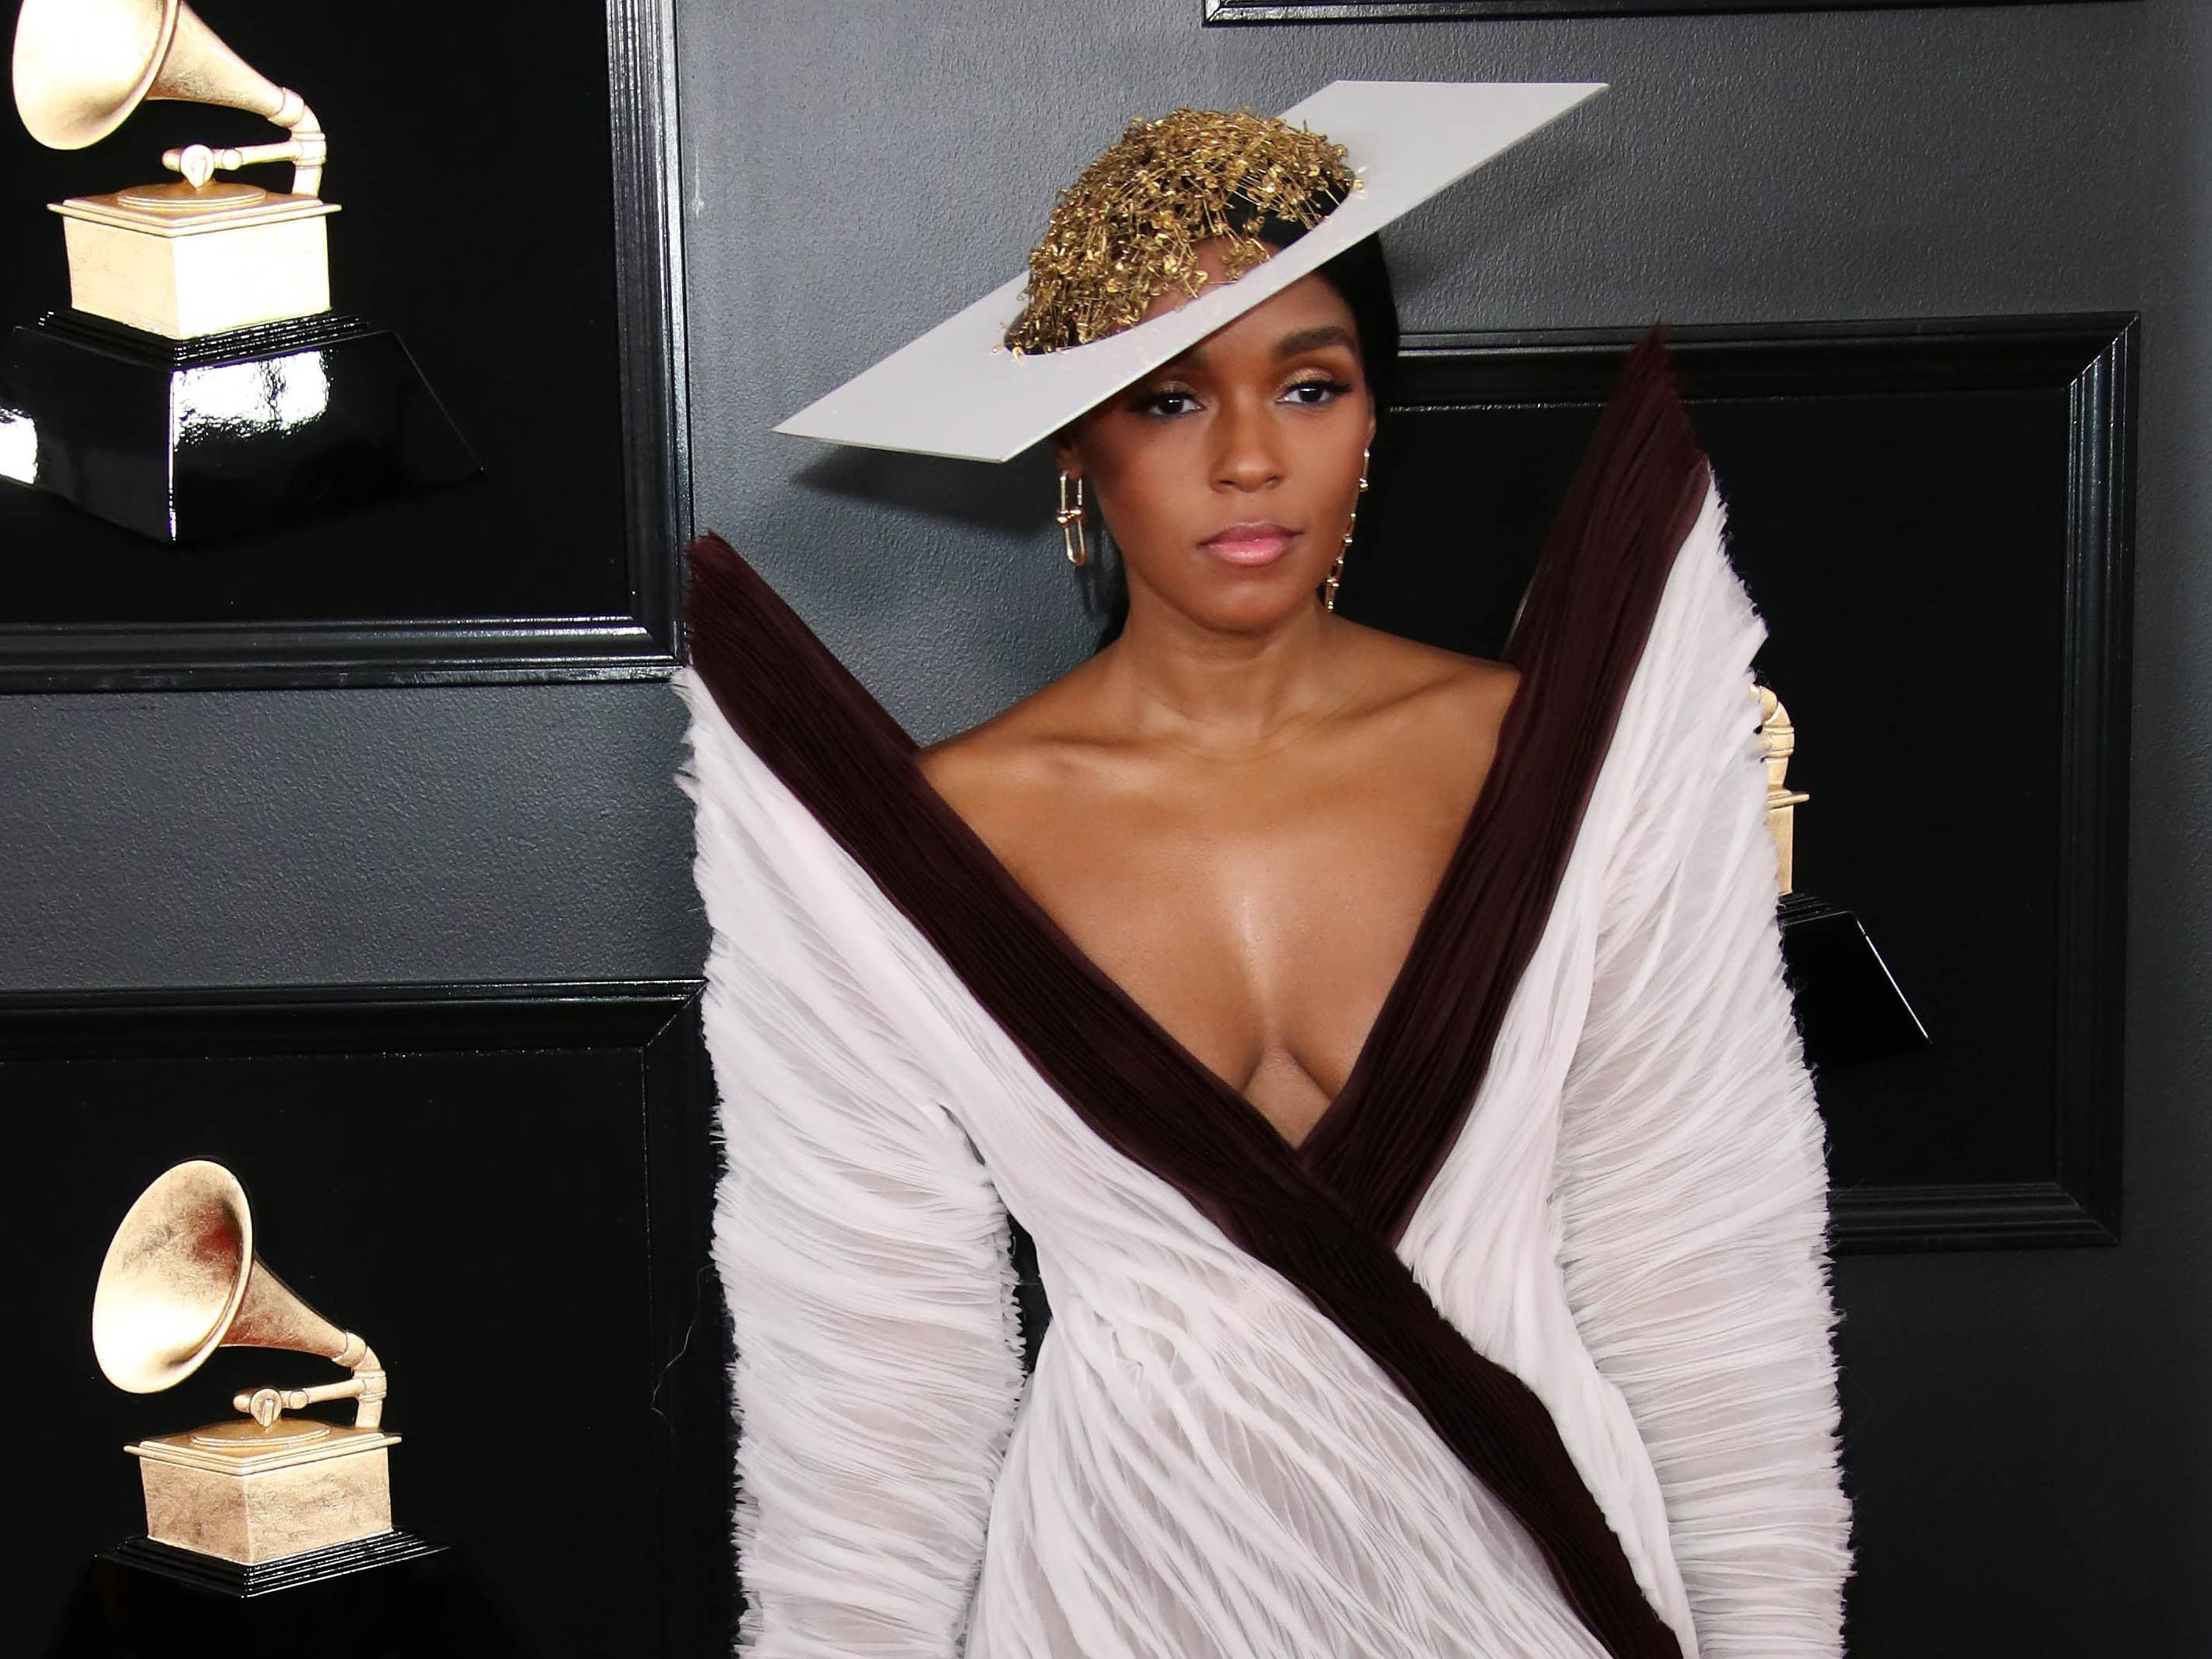 Janelle Monae attends the 61st Annual GRAMMY Awards on Feb. 10, 2019 at STAPLES Center in Los Angeles, Calif.